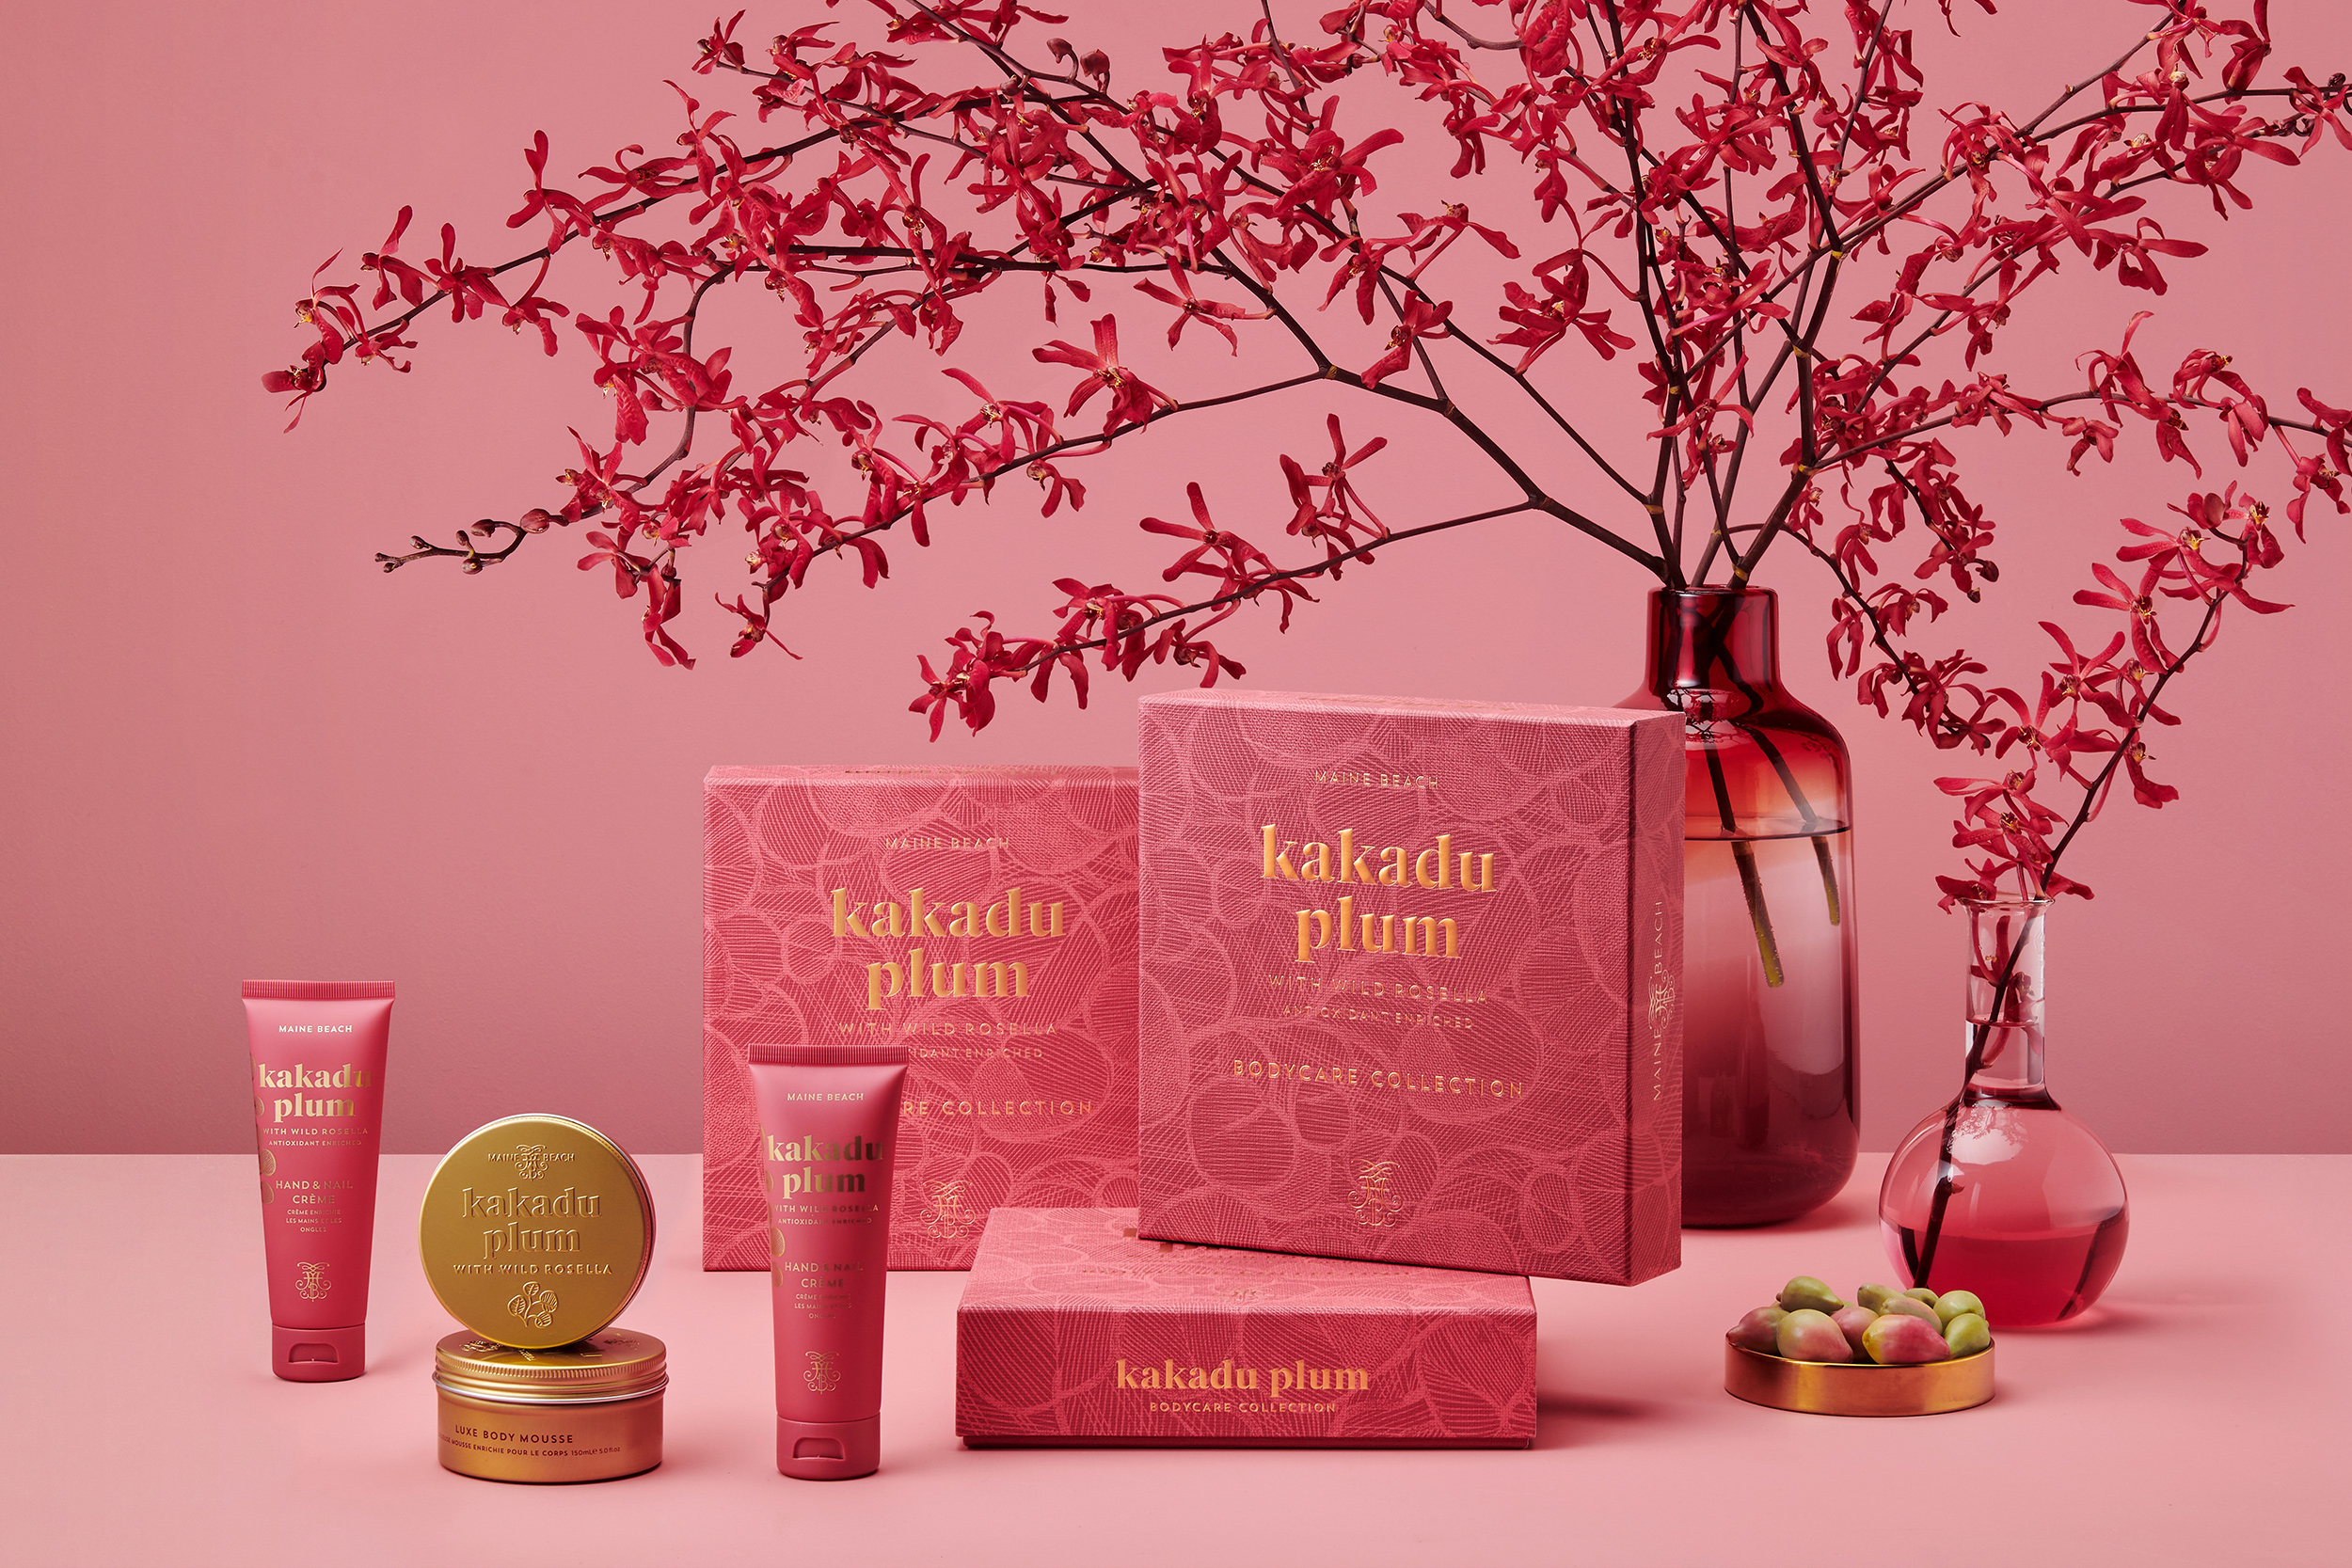 Harcus Design Create Maine Beach Kakadu Plum Bodycare and Home Fragrances Packaging Design